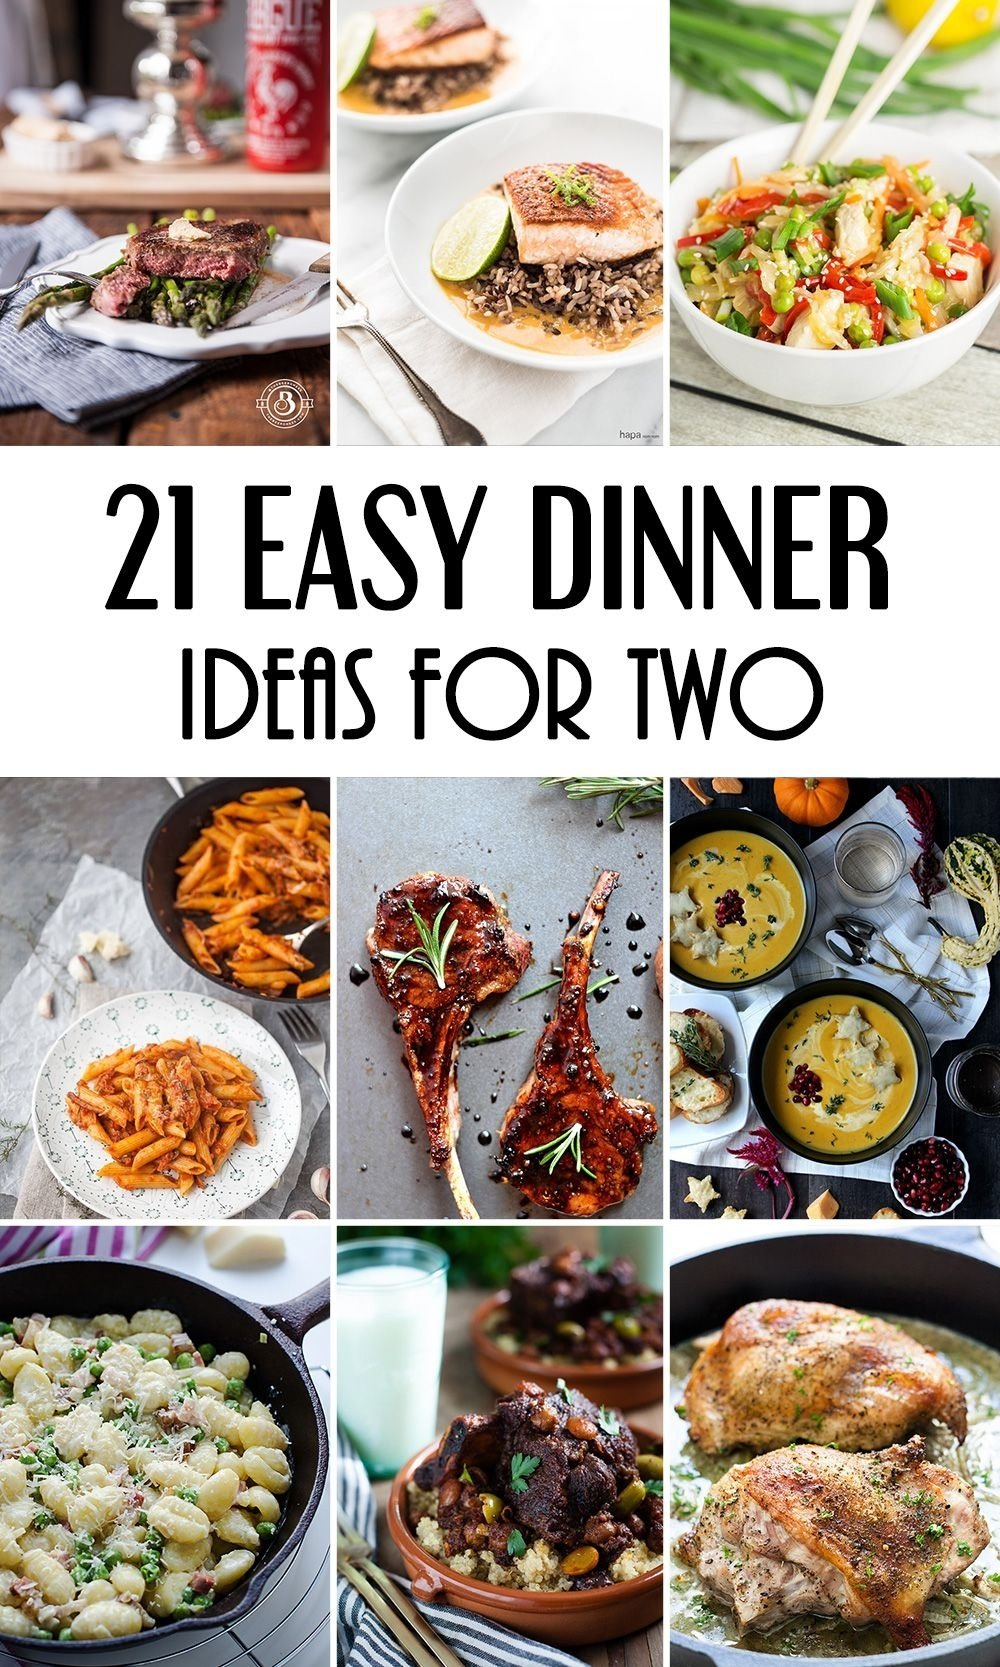 10 Nice Quick Meal Ideas For Two 21 easy dinner ideas for two that will impress your loved one 25